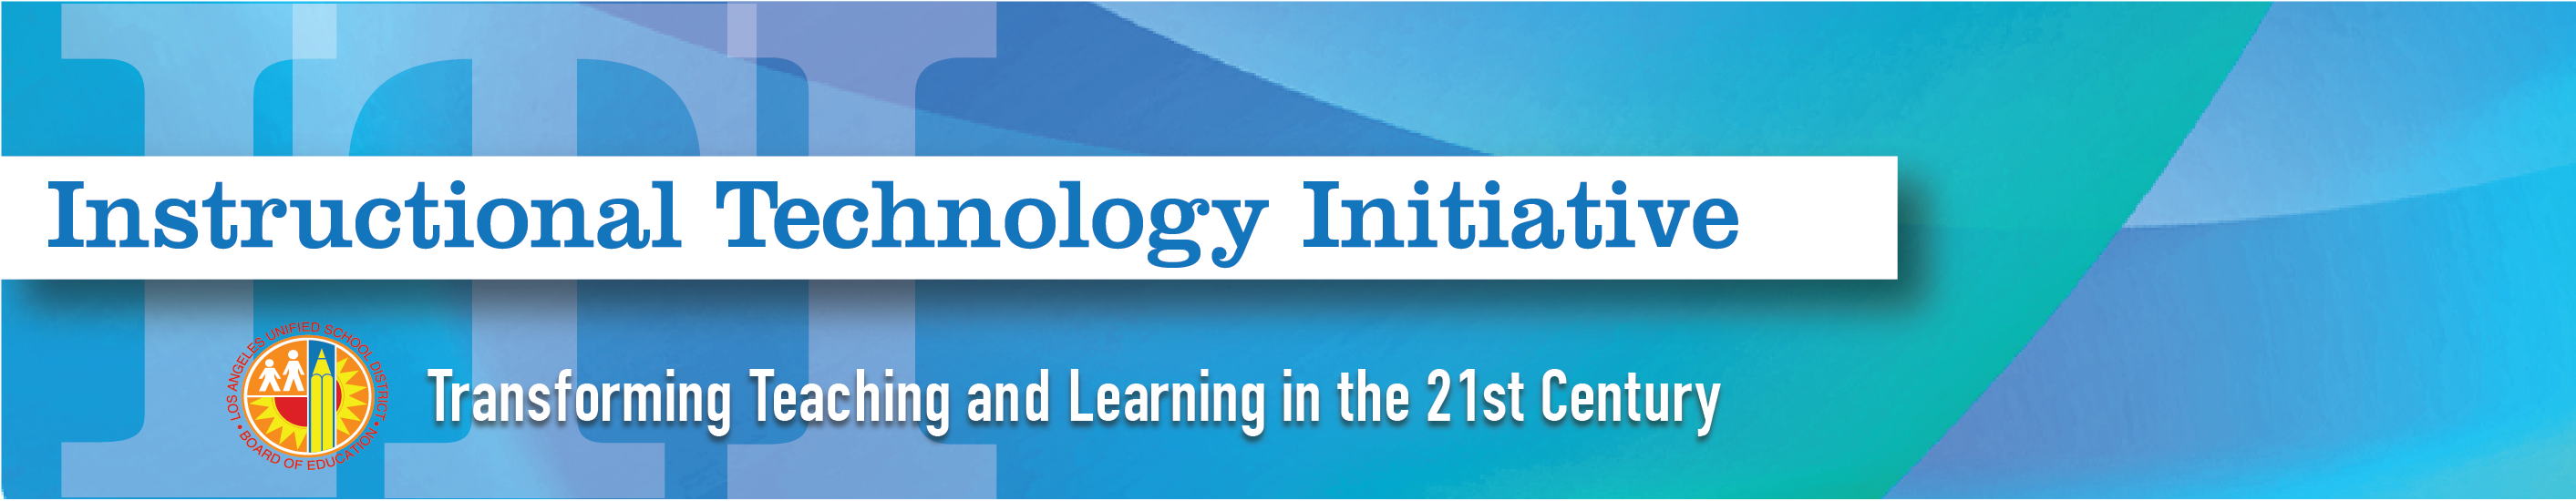 Instructional Technology Initiative